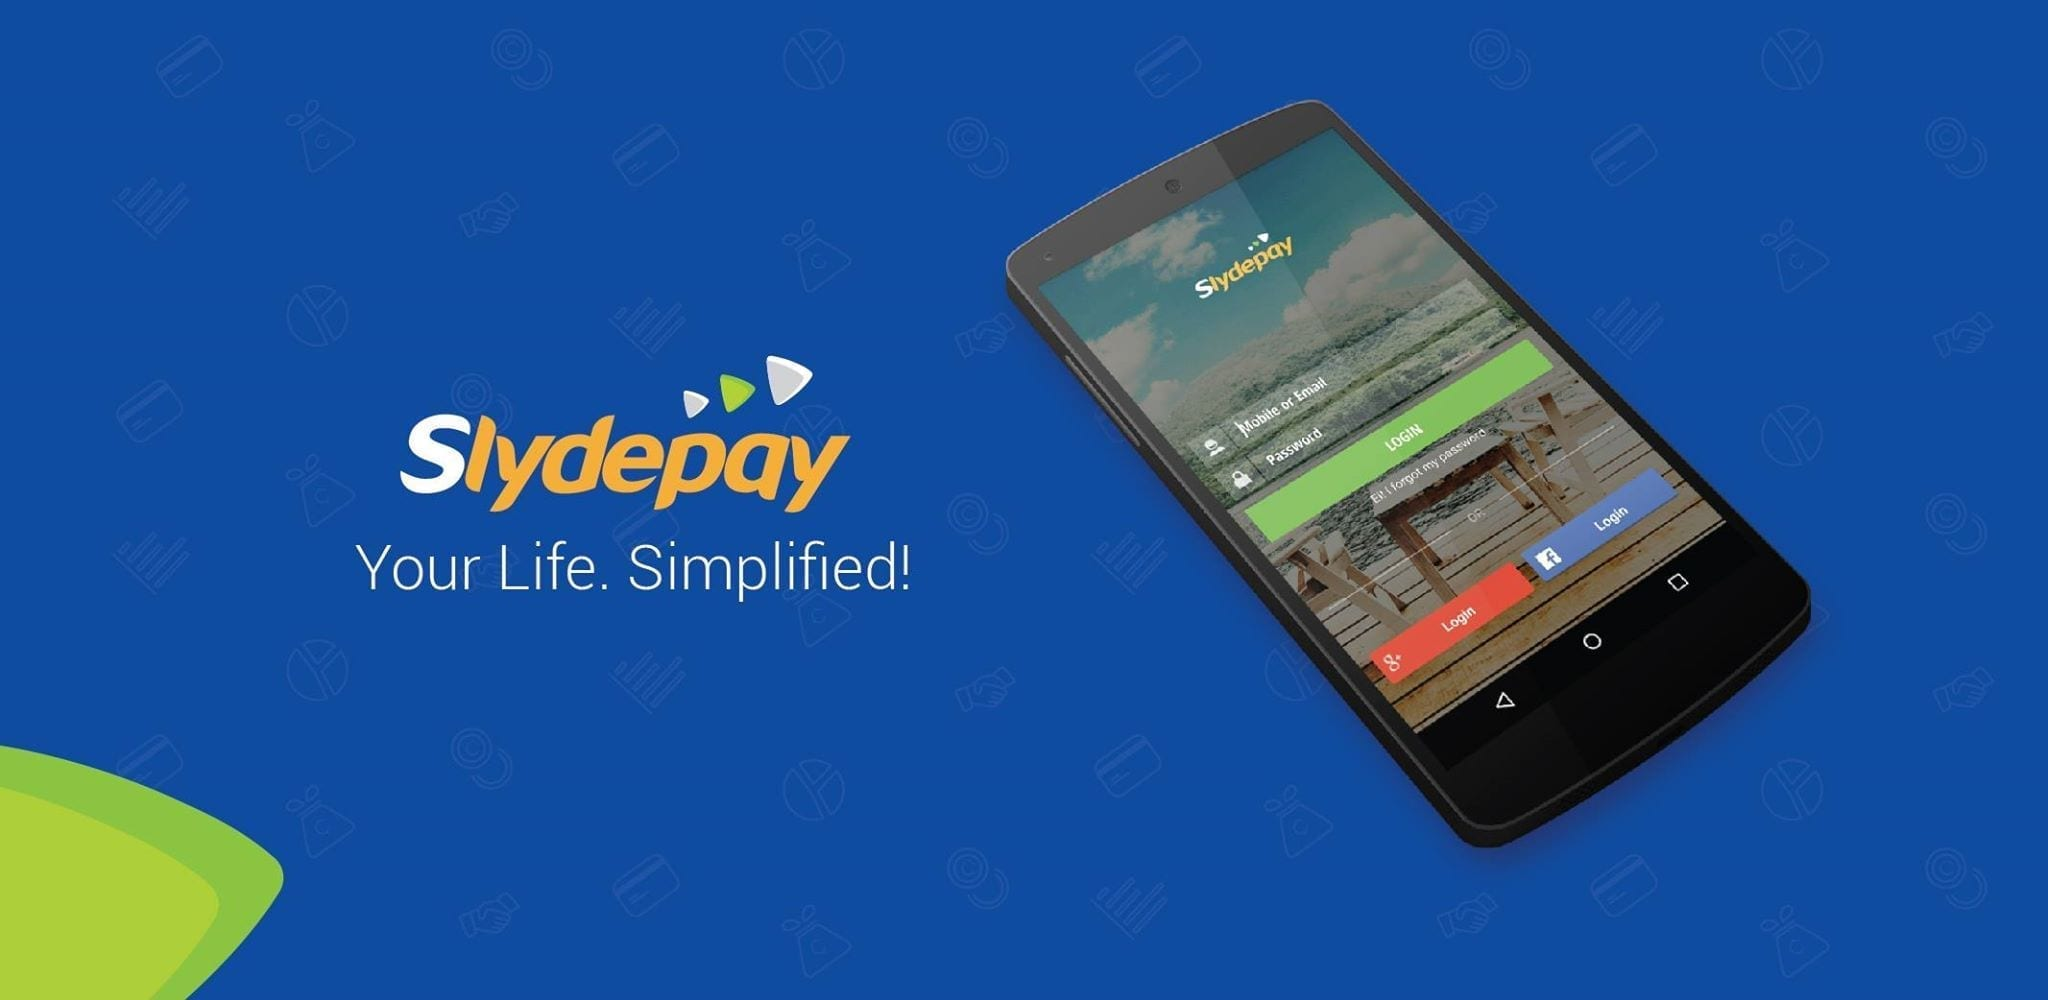 Slydepay – A simpler, more exciting way to manage your money